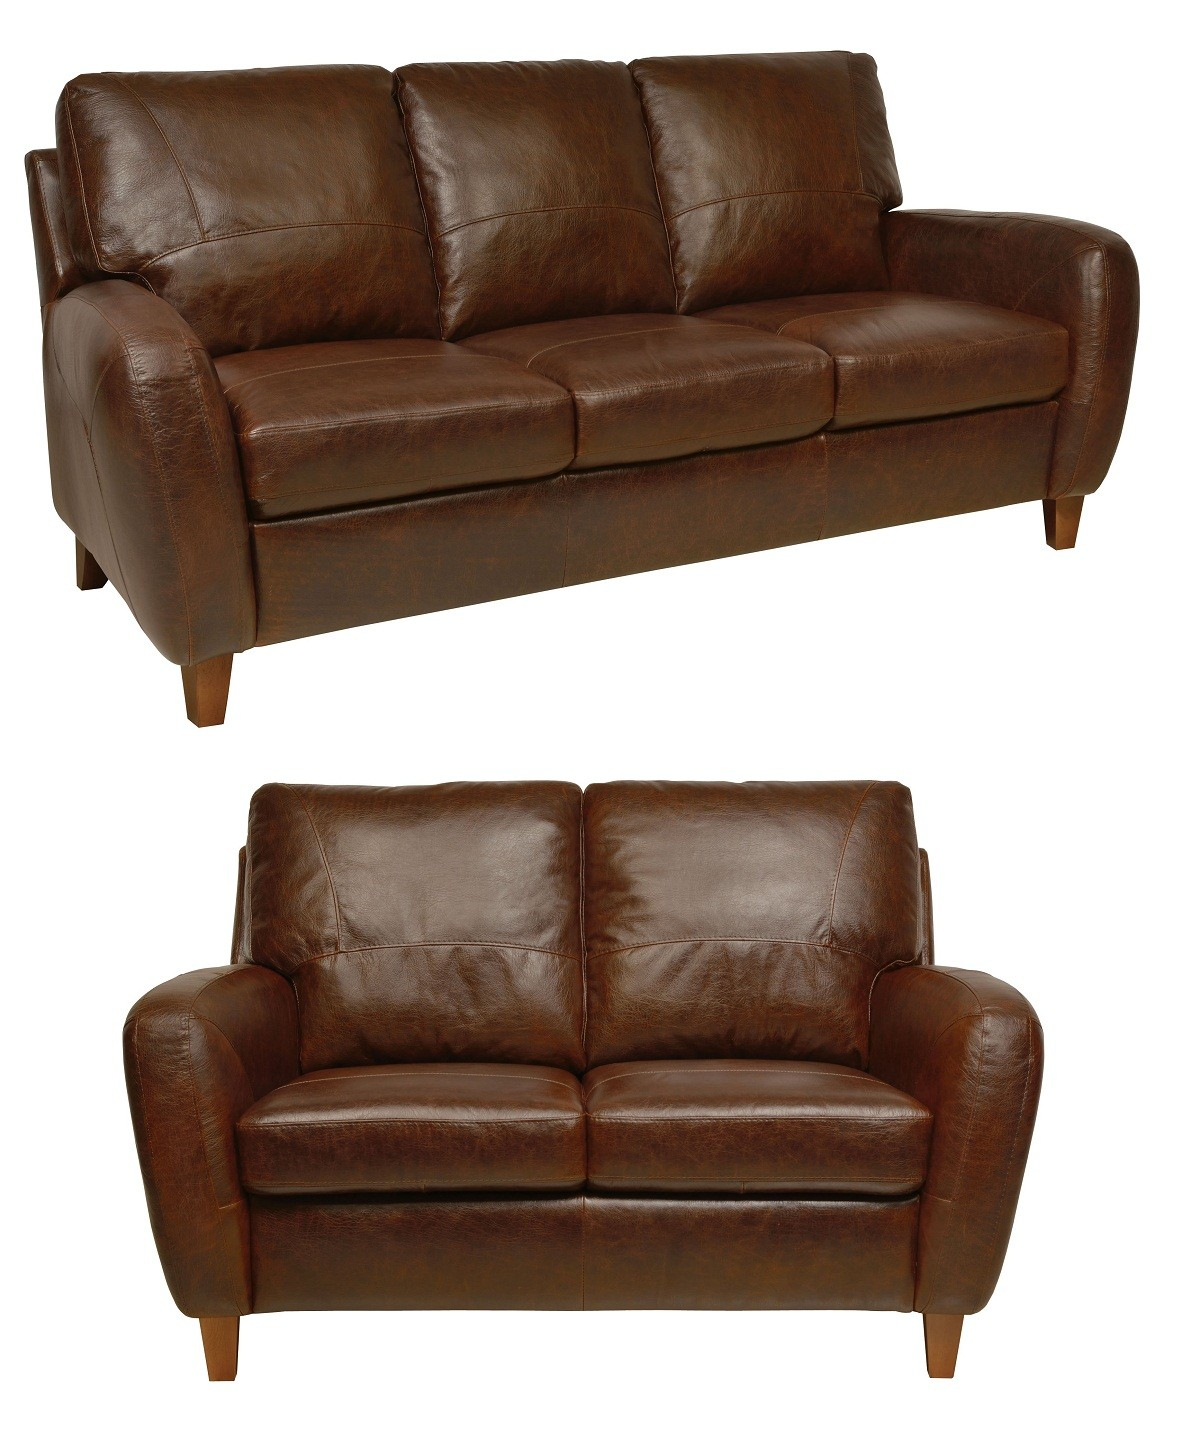 Jennifer Antique Tan Italian Leather Living Room Set from  : set2 from colemanfurniture.com size 1200 x 1431 jpeg 287kB